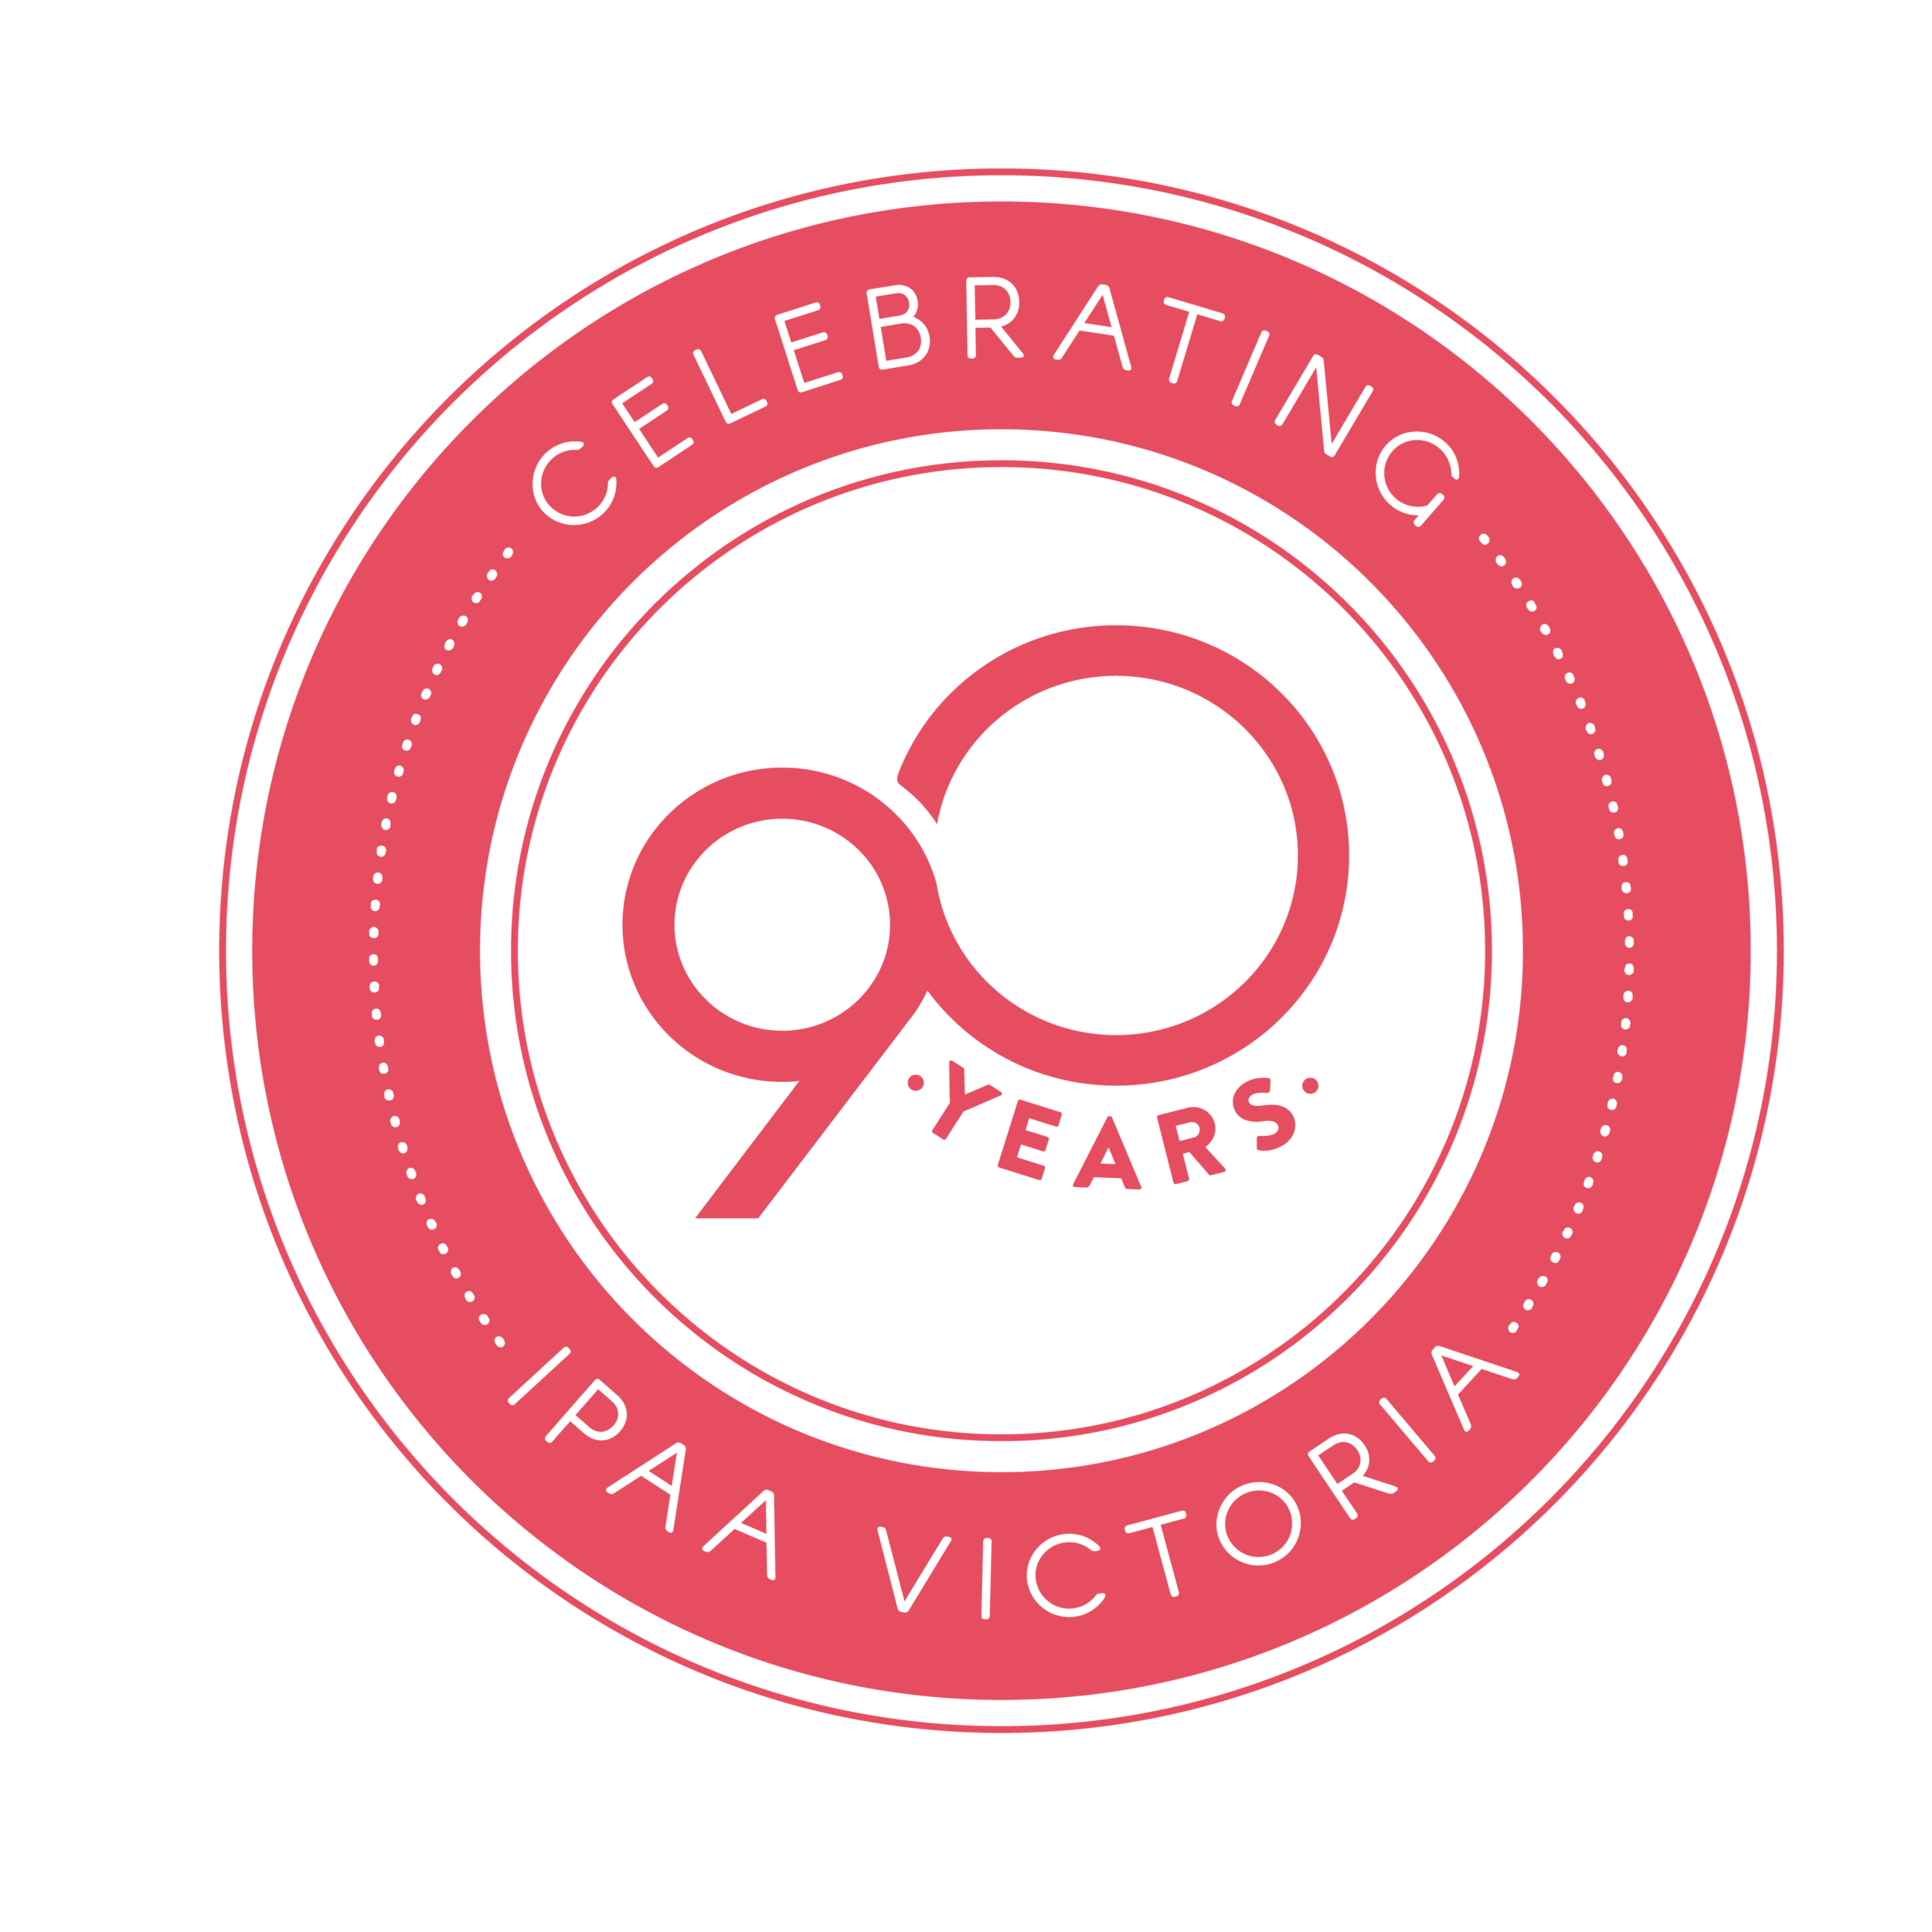 Look for our special events this year as we celebrate our 90th!